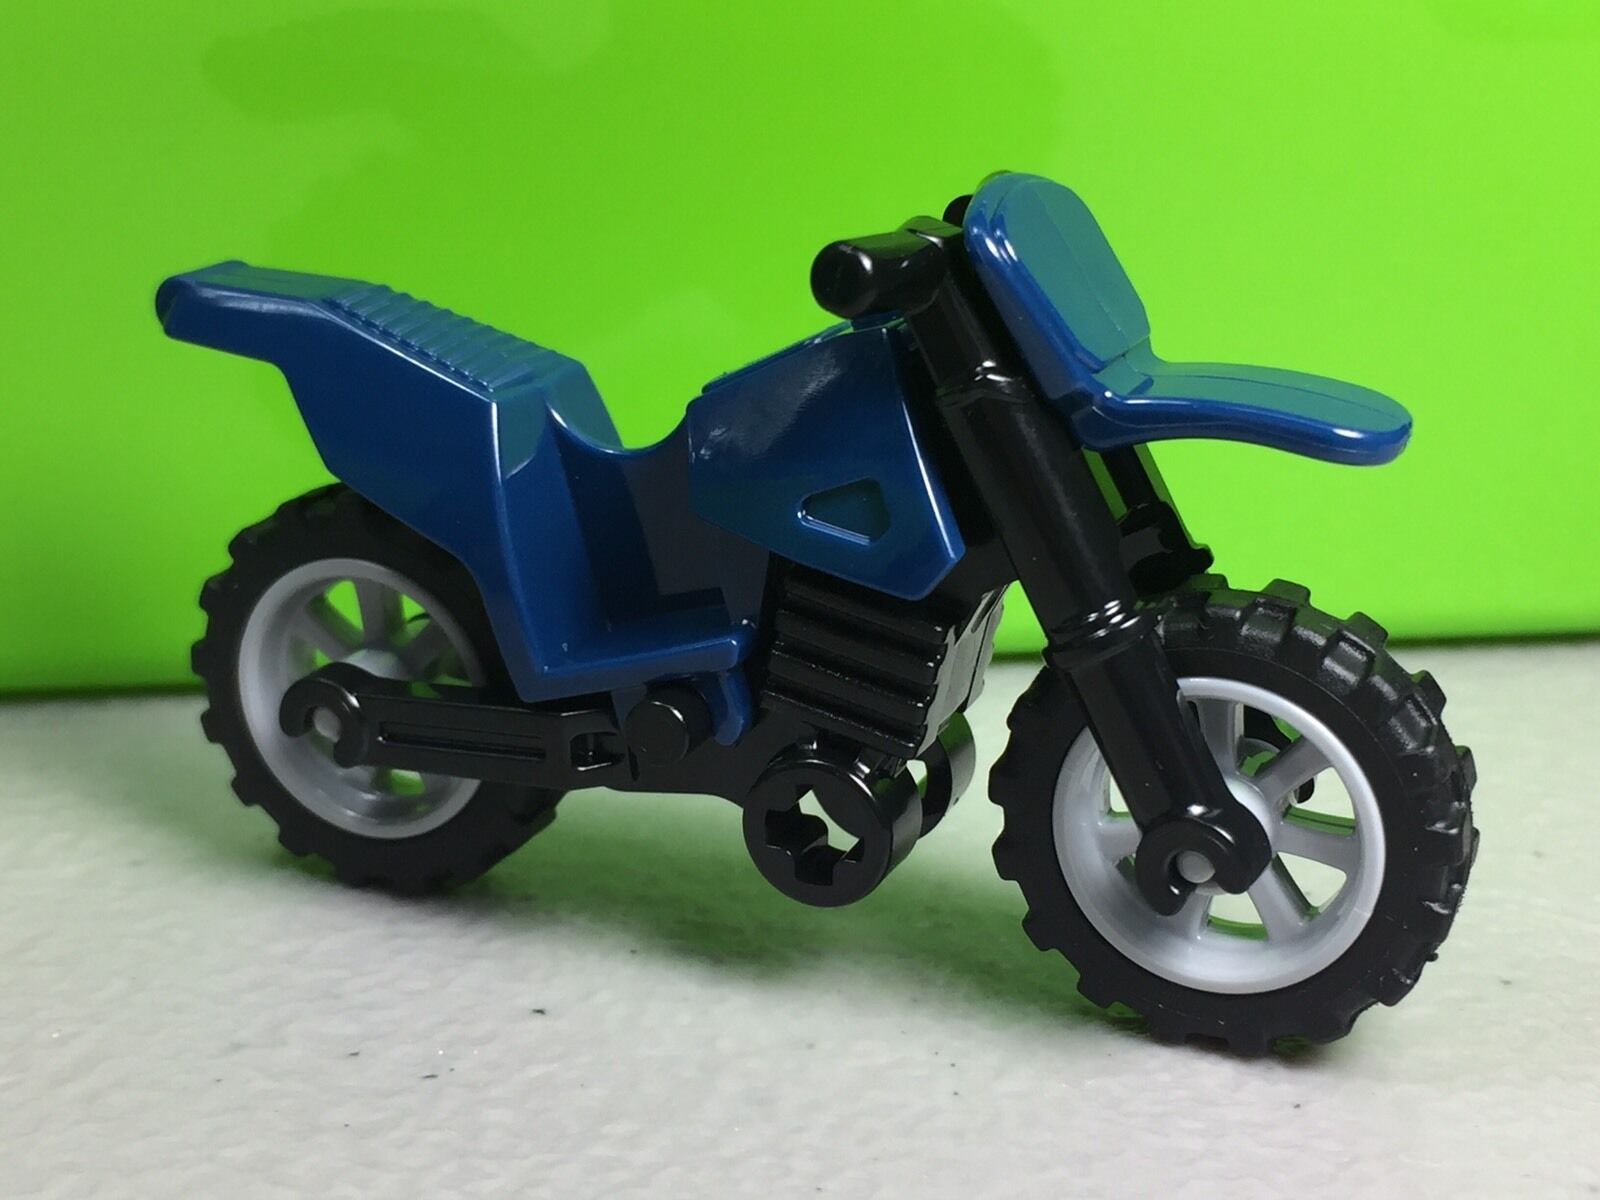 LEGO ® OFFICIAL 1x Blue dirt bike motorcycle with grey wheels NEW 50860c02